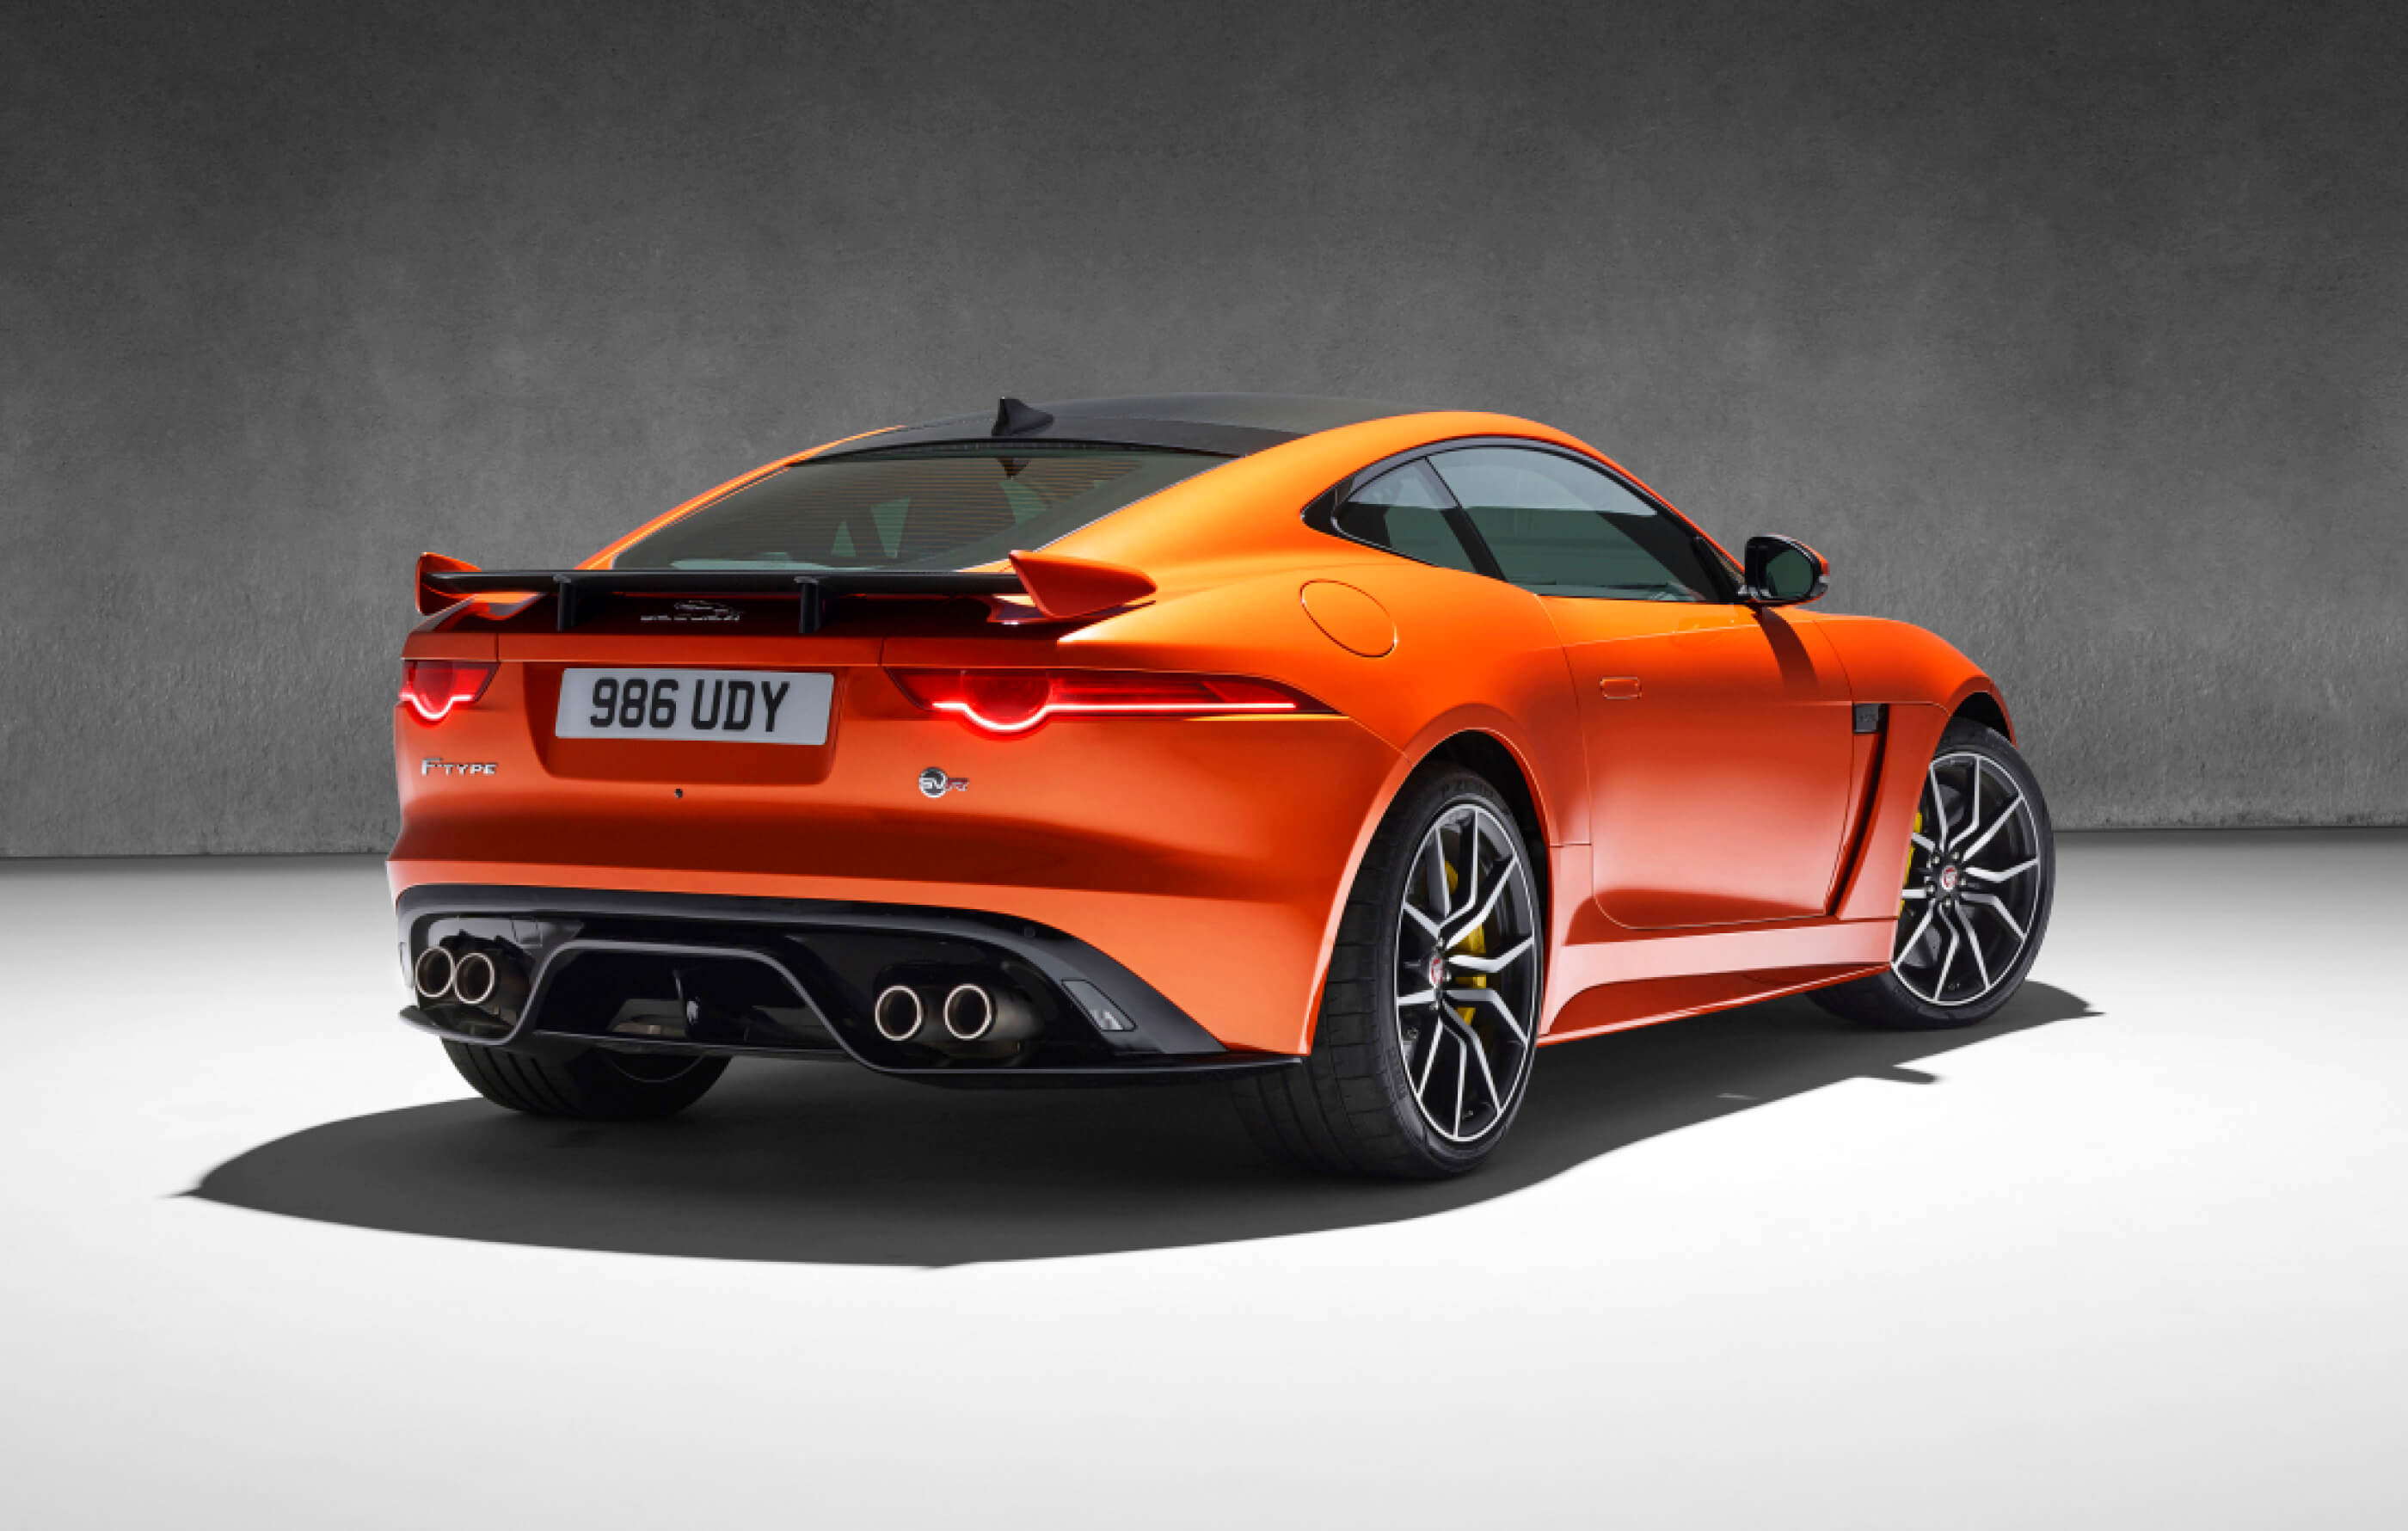 Full screen image of an orange Jaguar F-Type SVR, with tan leather interior on an industrial charcoal background